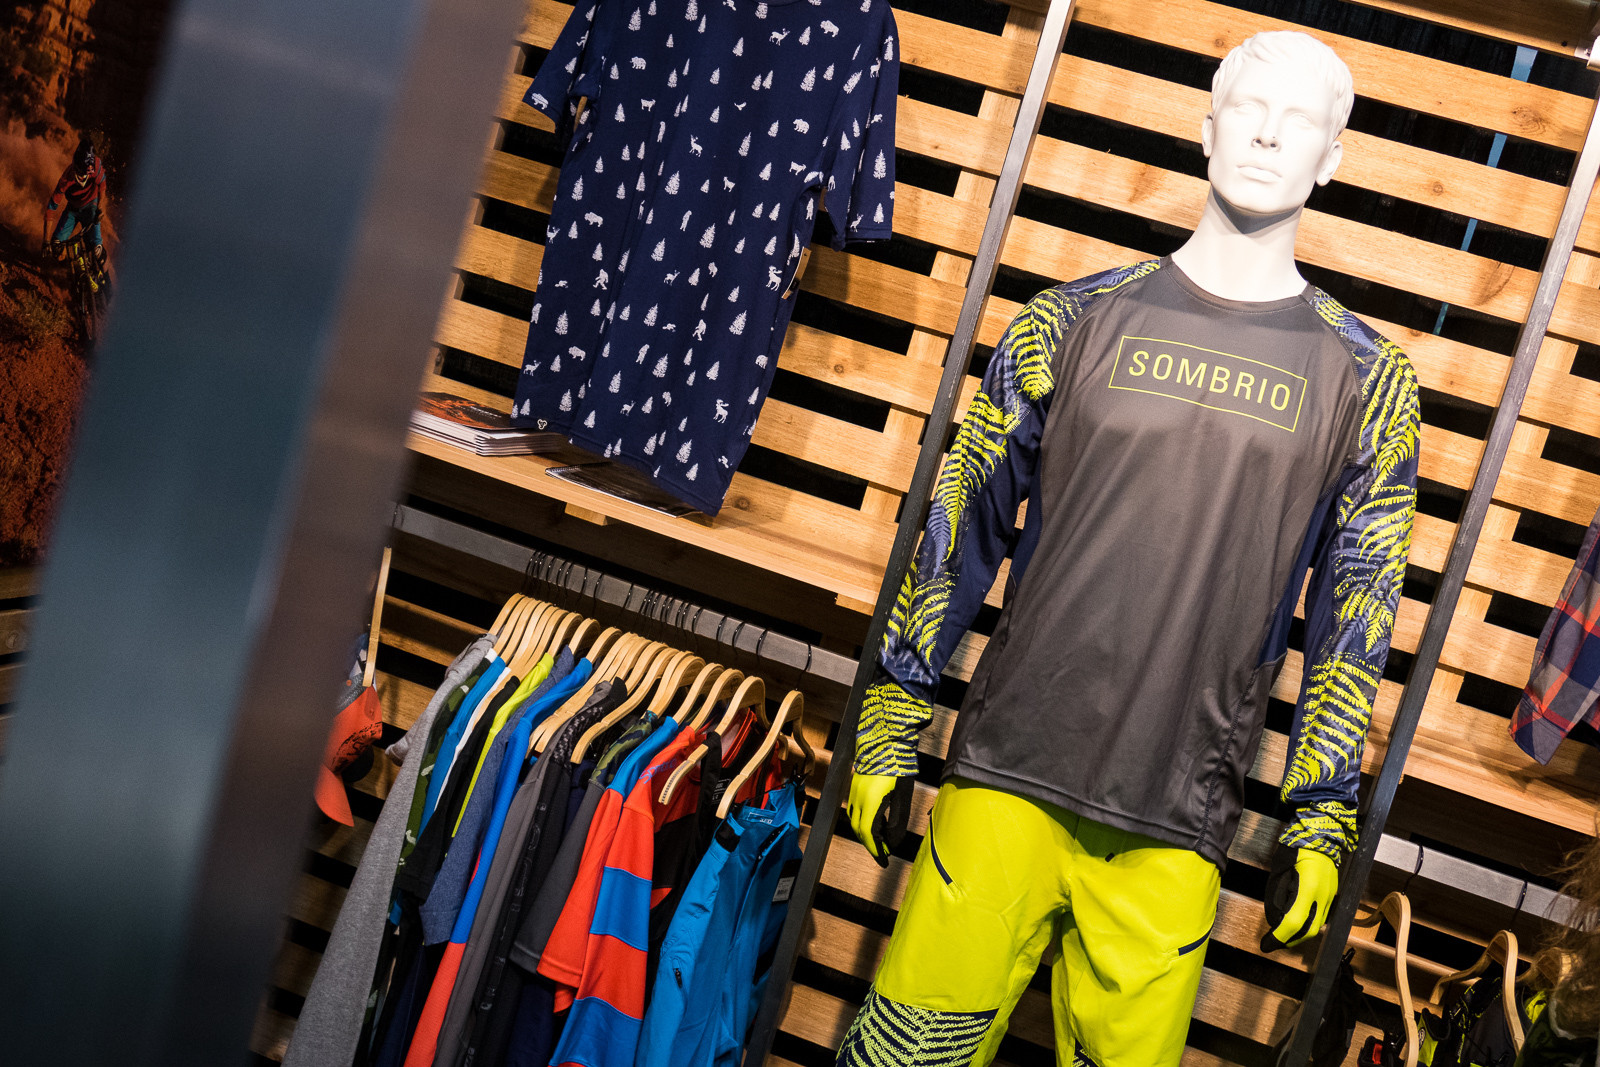 Spring 2016 Sombrio MTB Apparel - 2016 Protective Gear and Apparel at Interbike - Mountain Biking Pictures - Vital MTB